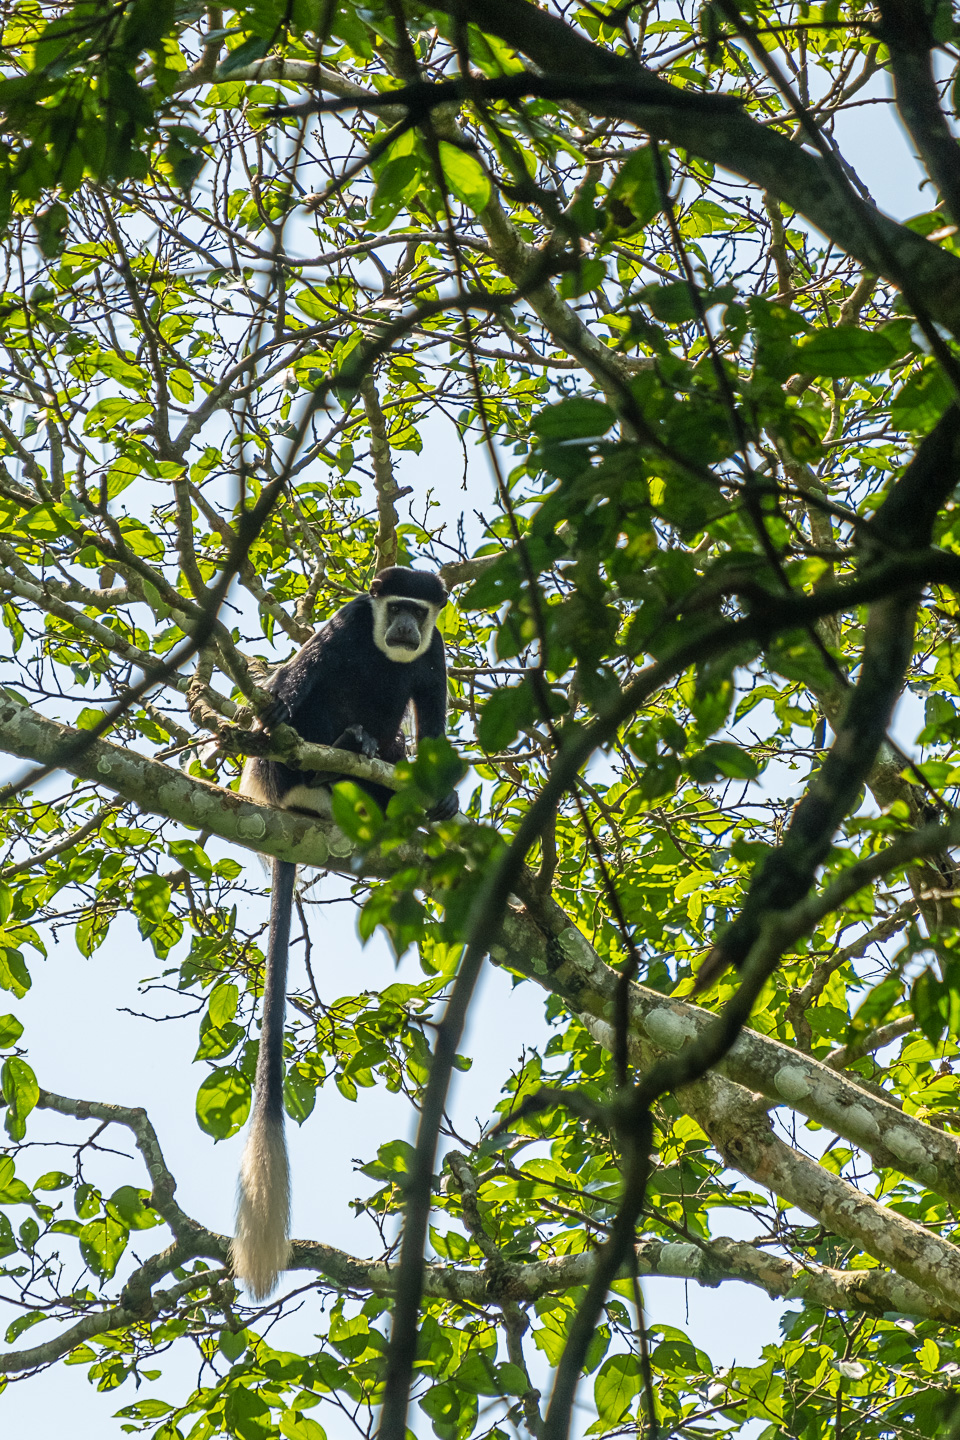 White-tailed monkey looking down upon us as we walk through the forest at Semiliki copyright @triplefphototours